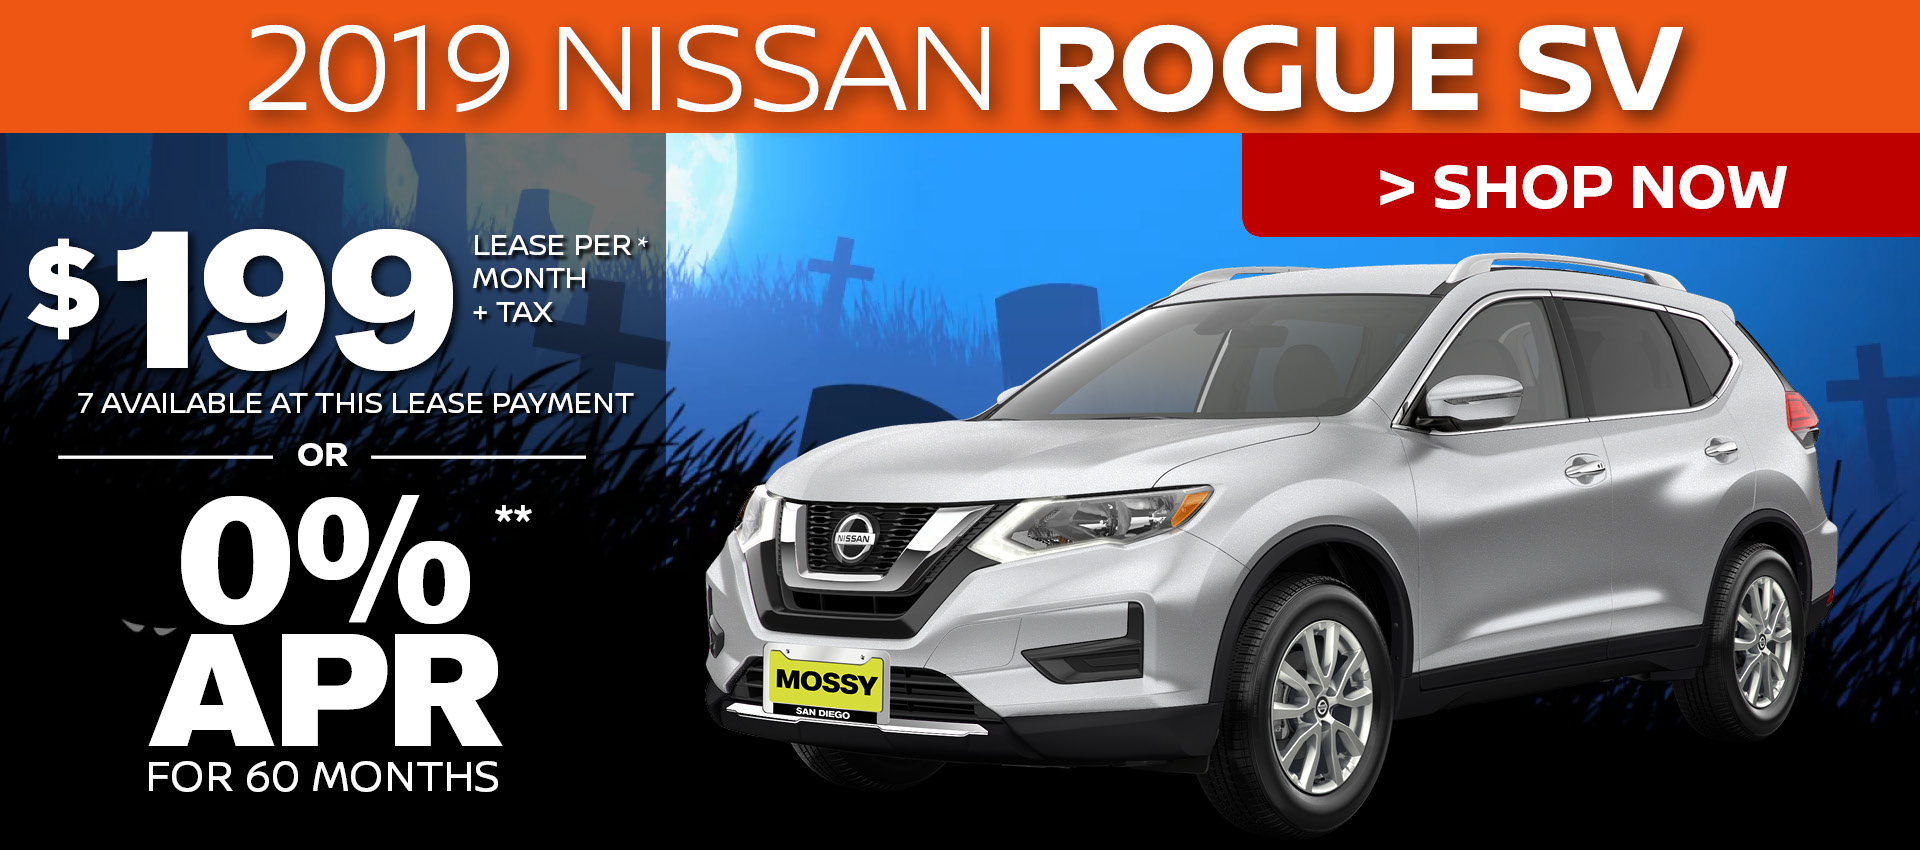 Mossy Nissan - Nissan Rogue SV HP